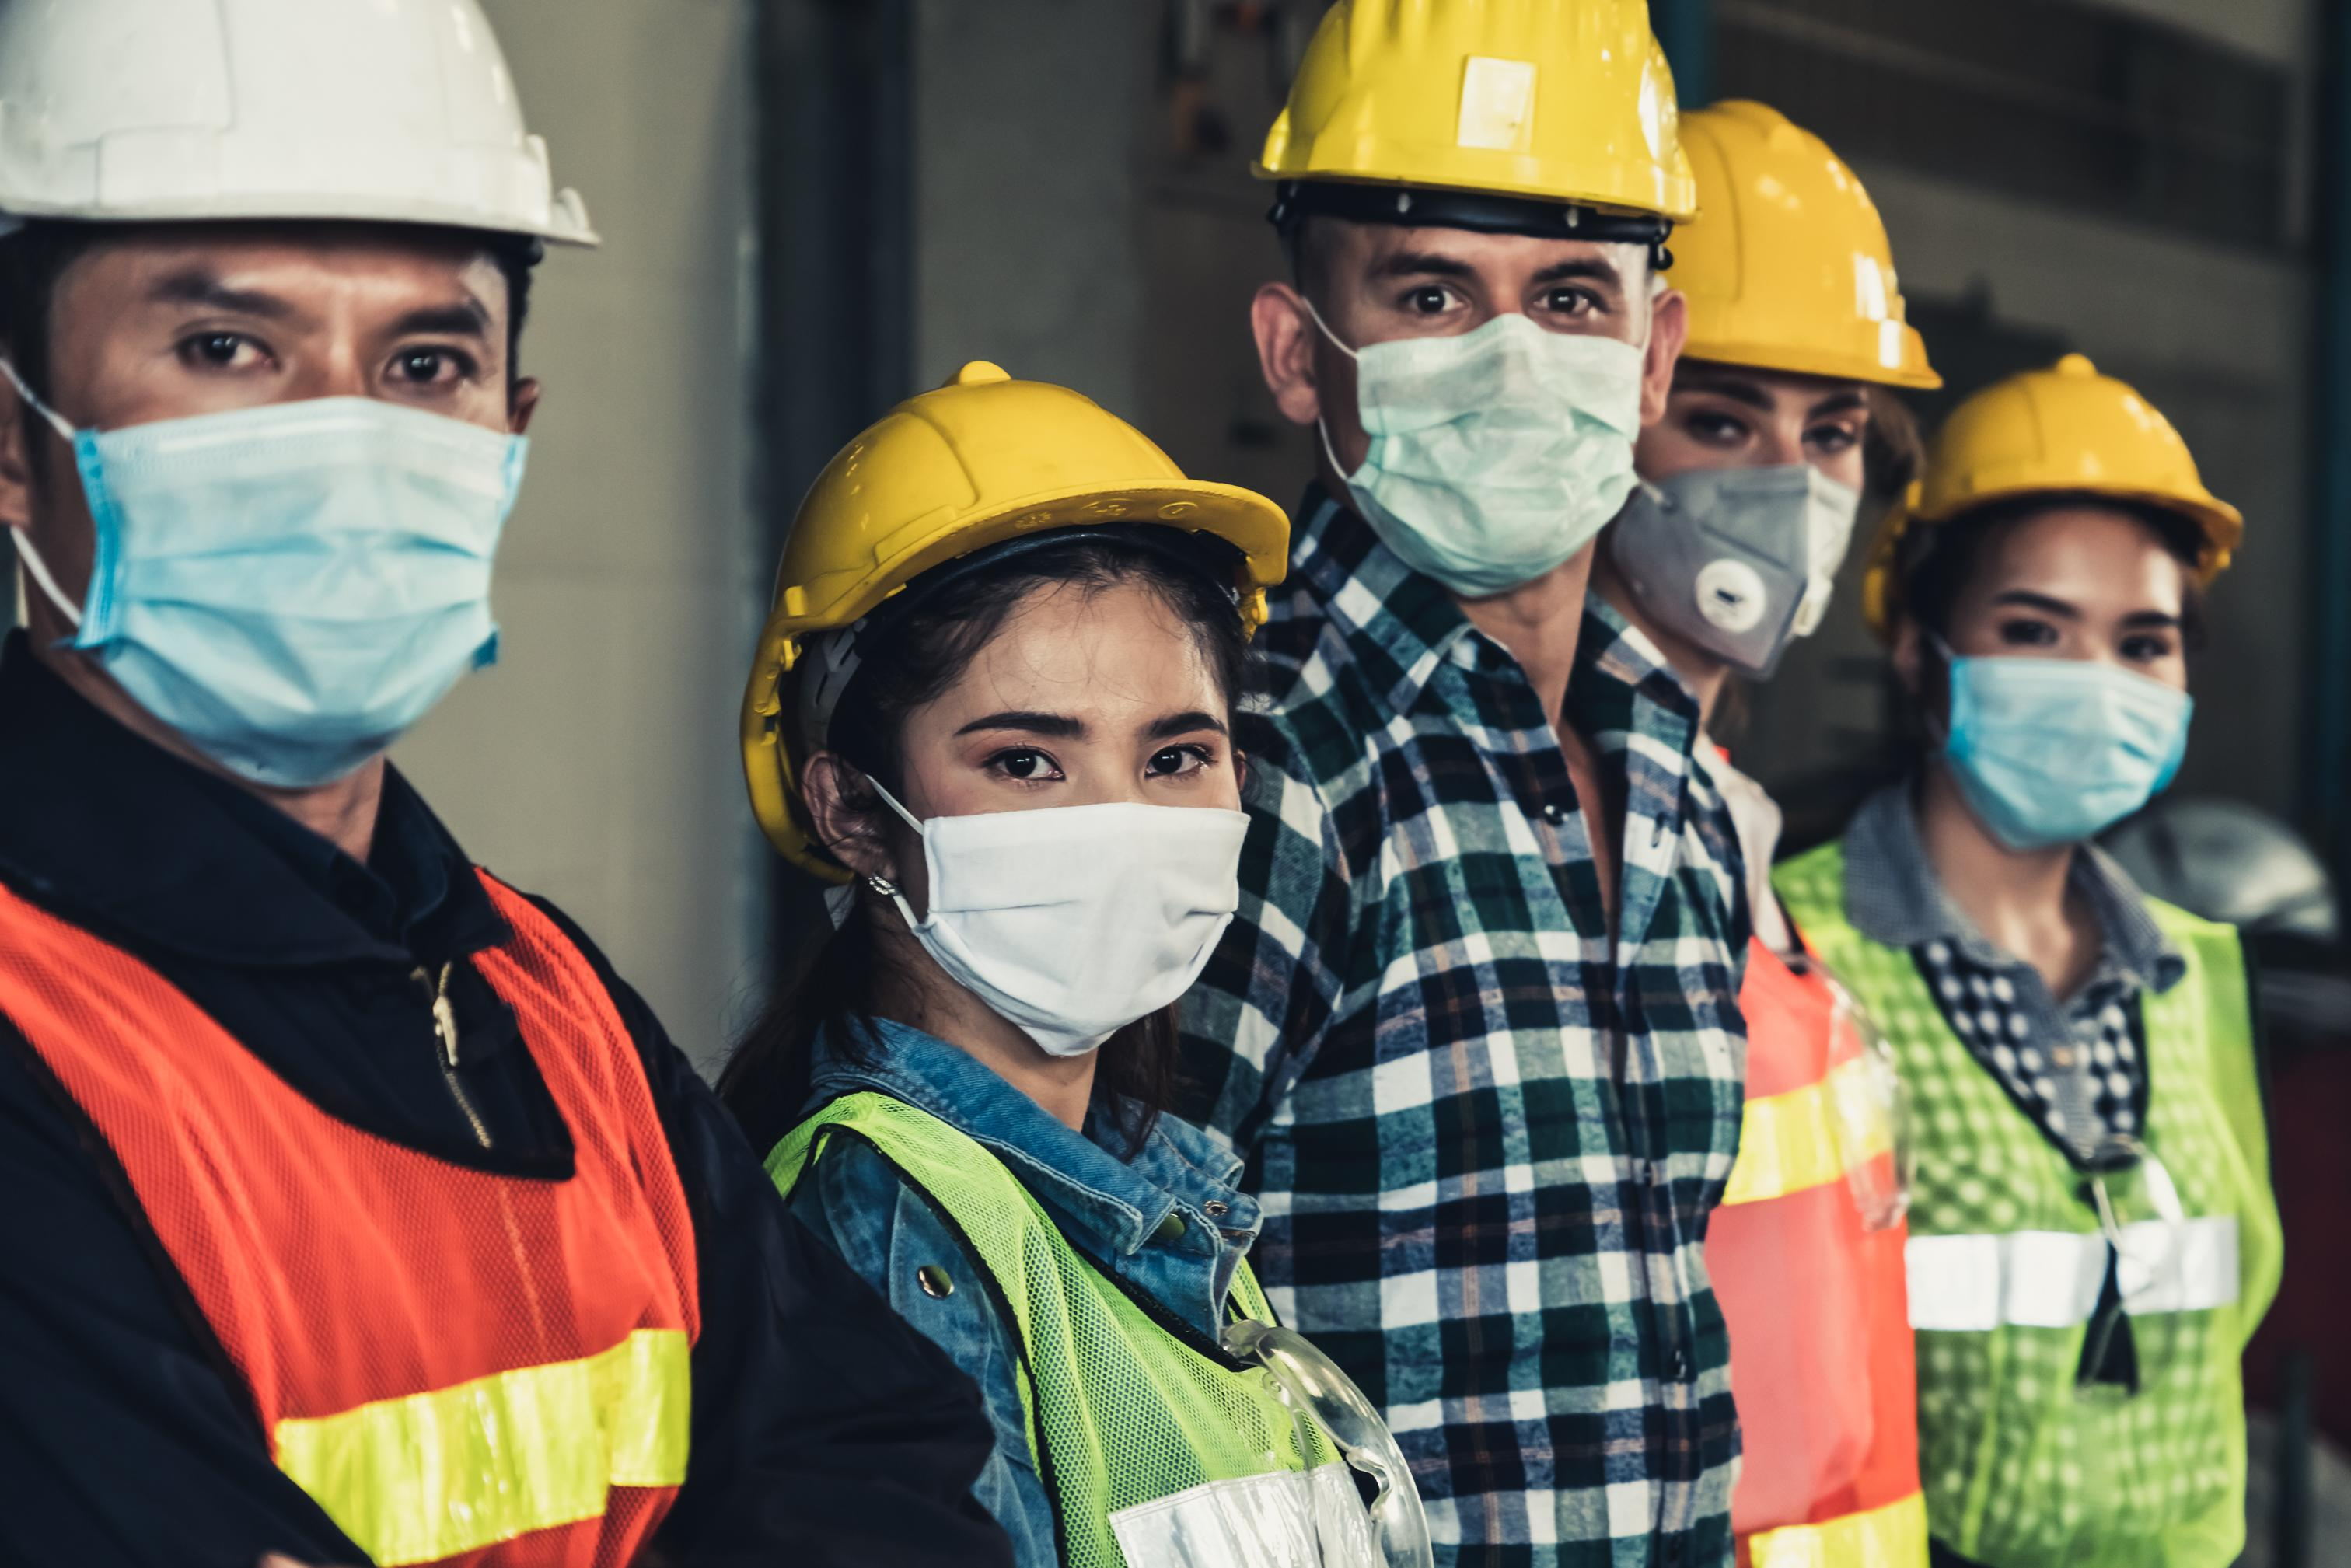 Construction industry hit hard, even as states deem it an 'essential service'